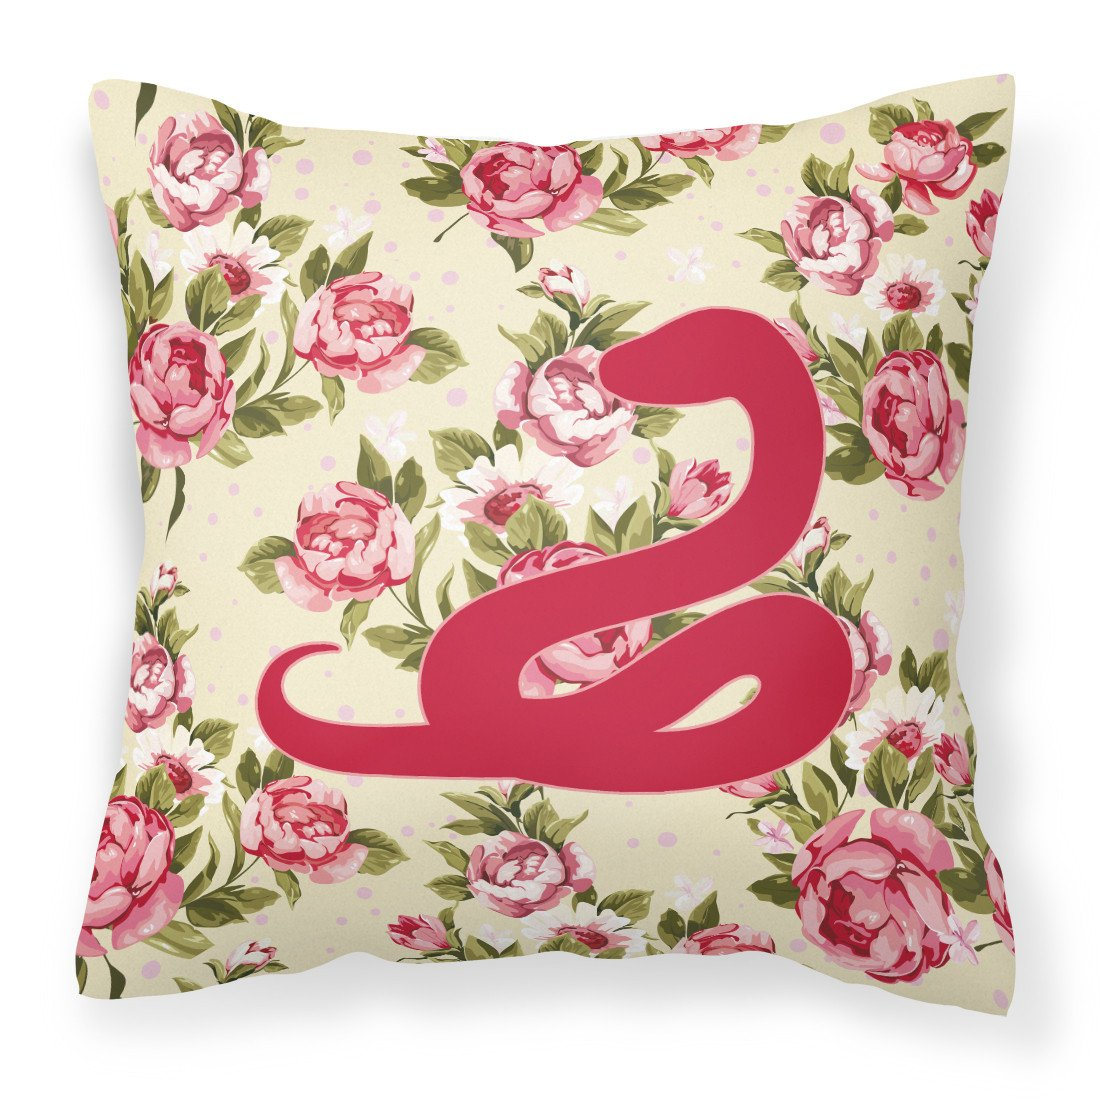 Snake Shabby Chic Yellow Roses  Fabric Decorative Pillow BB1124-RS-YW-PW1414 - the-store.com